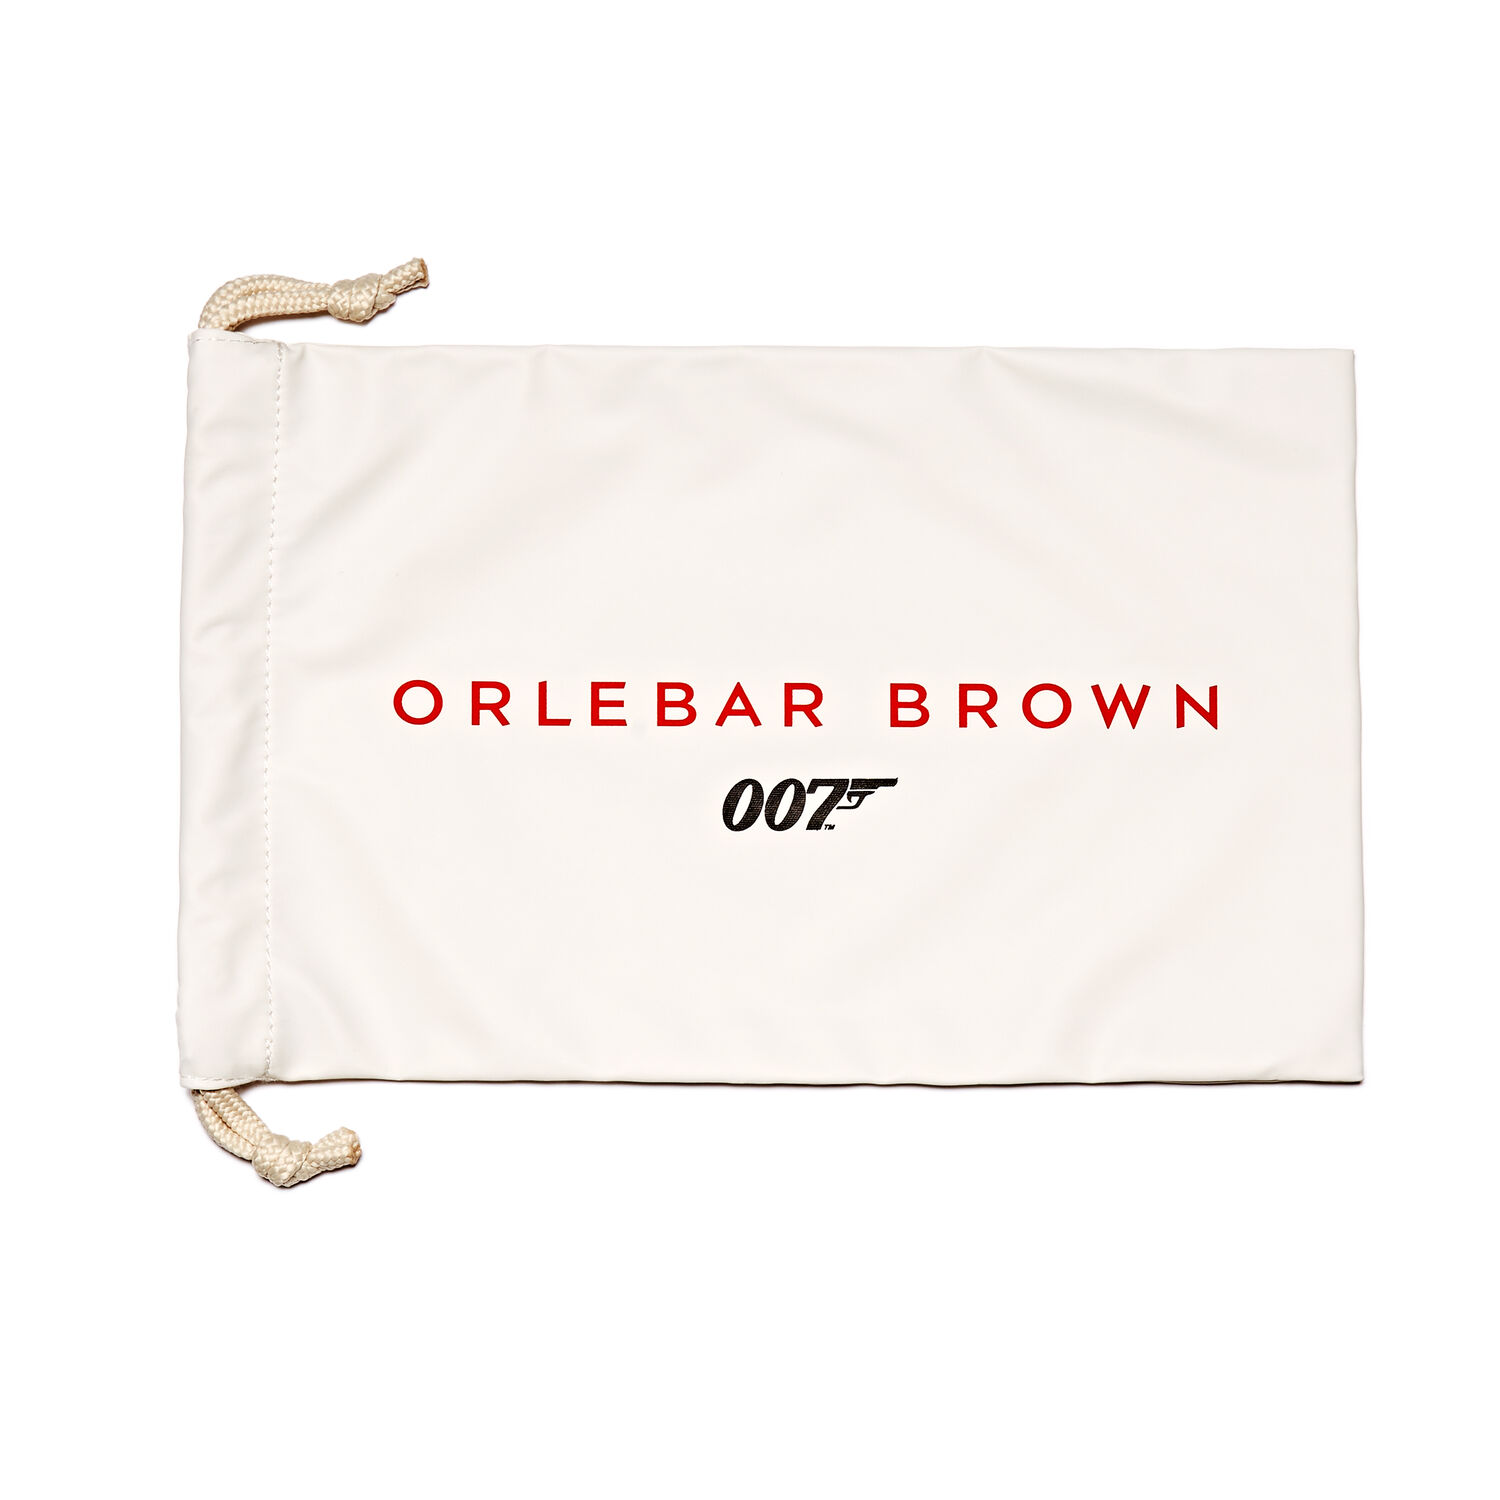 Orlebar Brown Bulldog DR NO